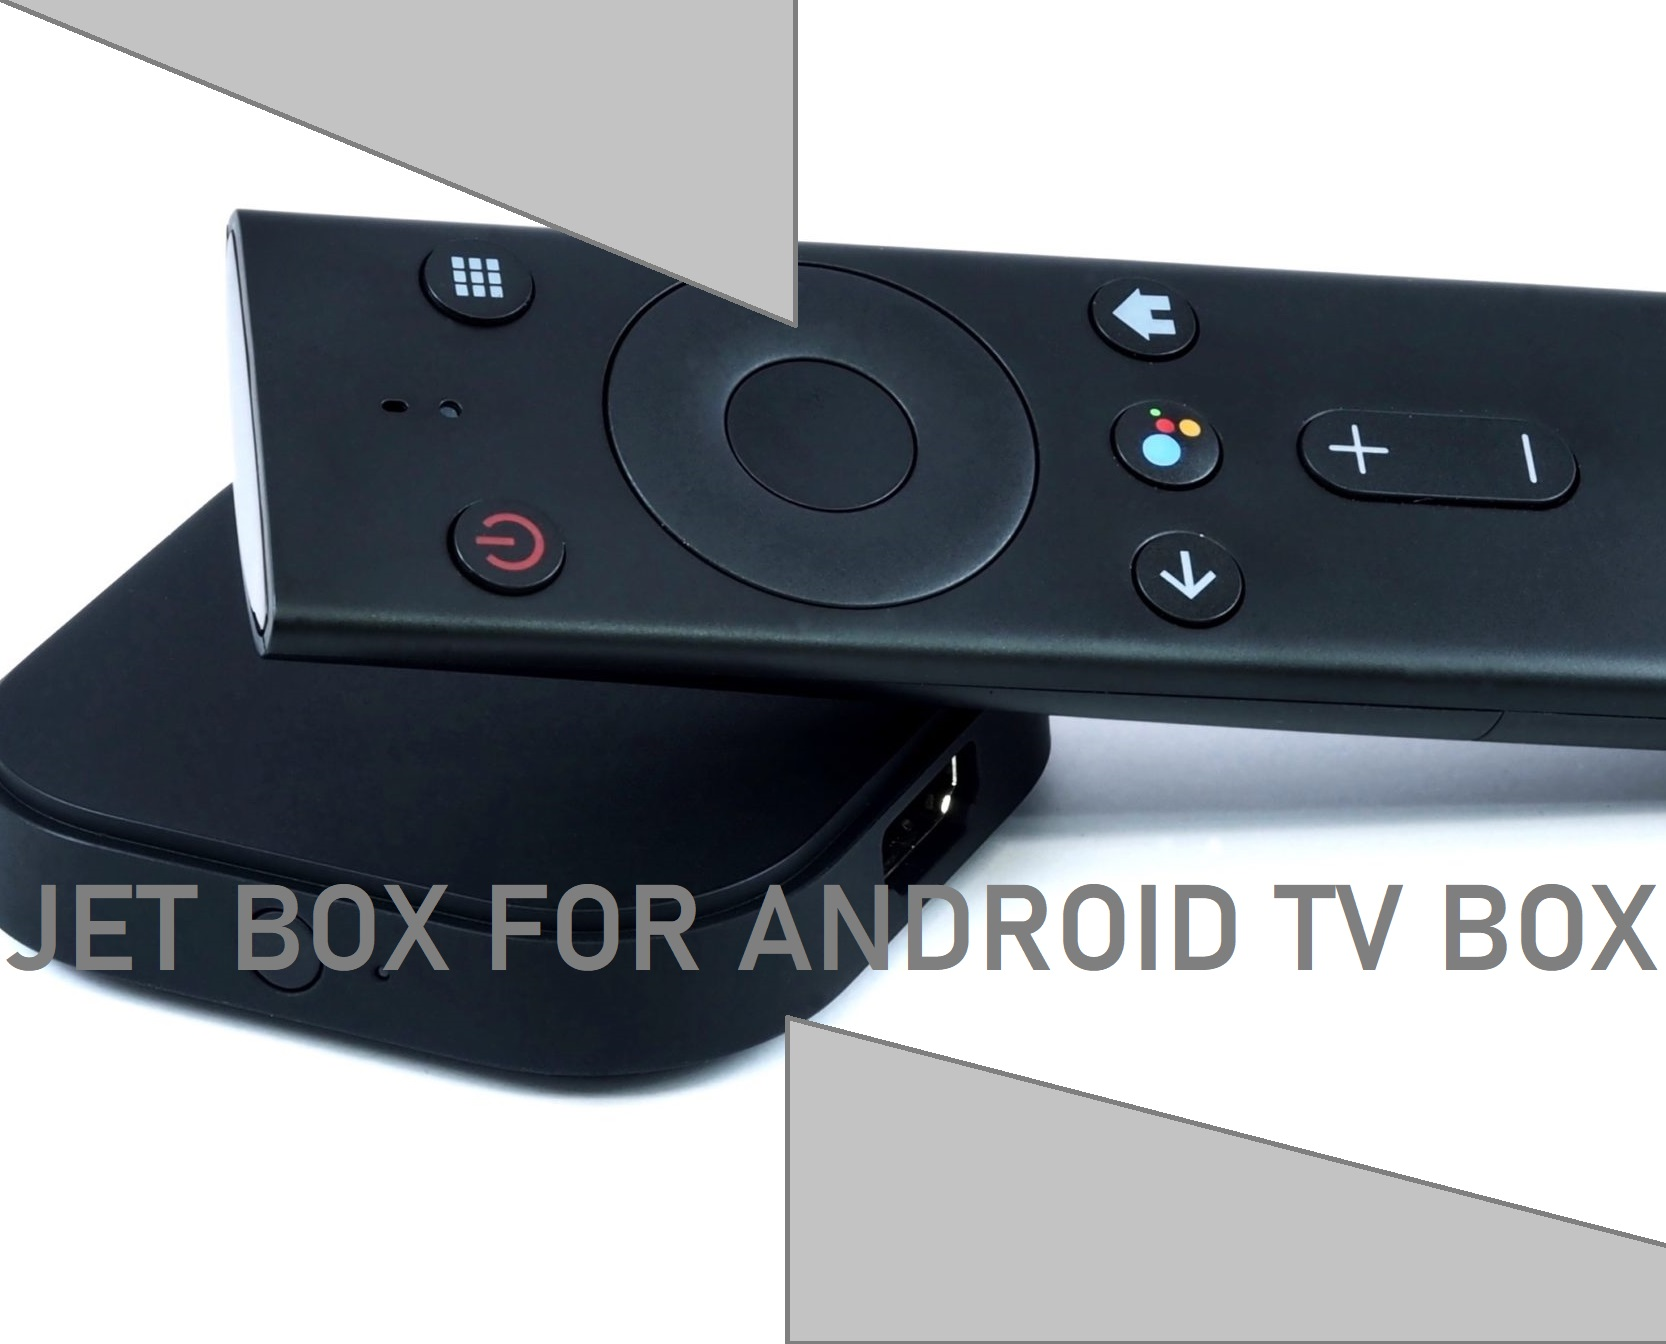 JetBox For Android TV Box